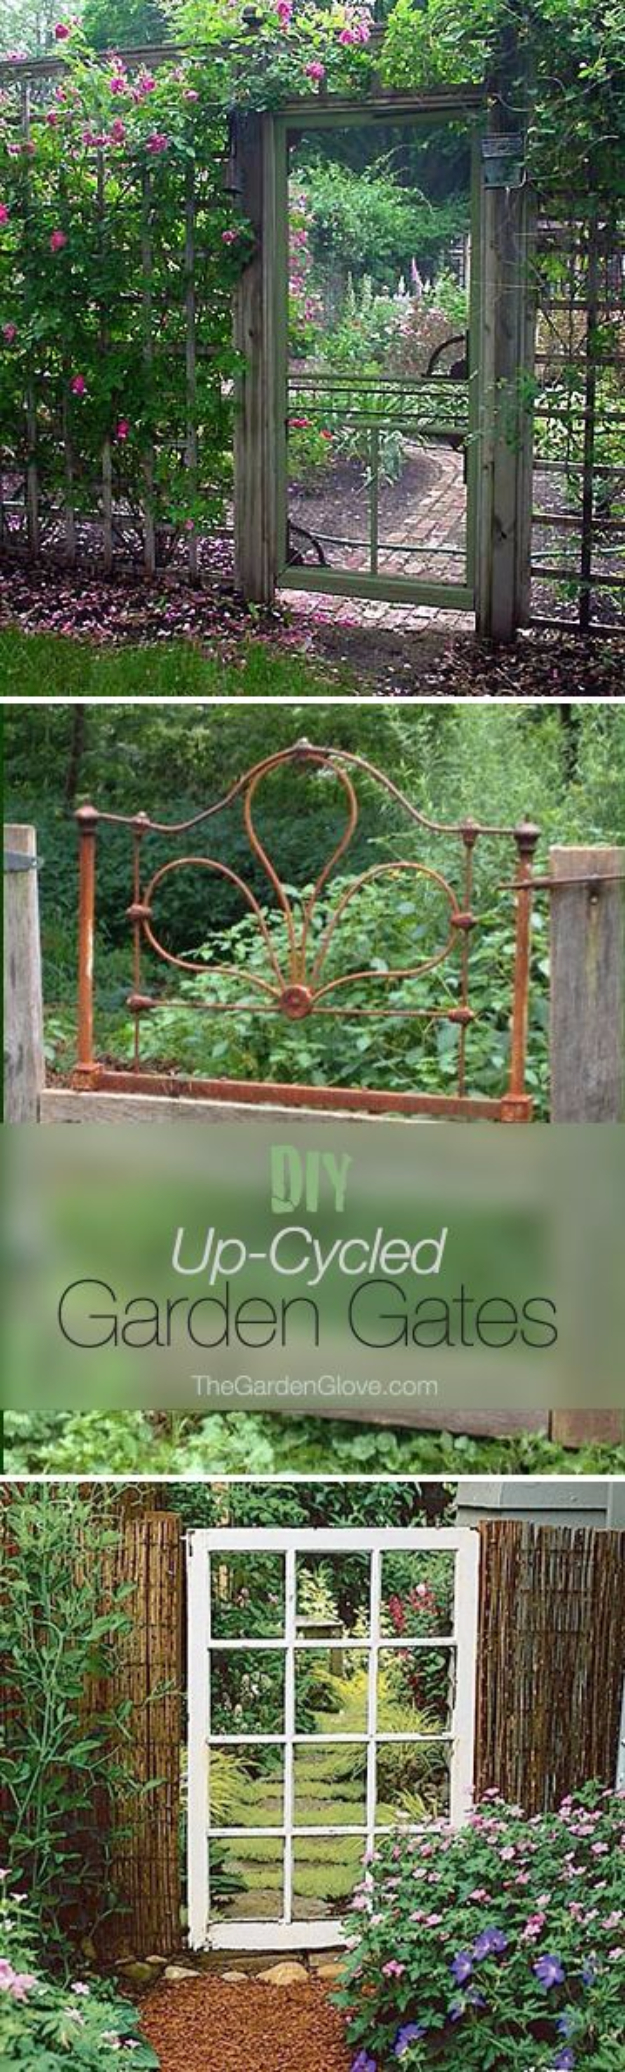 DIY Fences and Gates - DIY Up-Cycled Garden Gates - How To Make Easy Fence and Gate Project for Backyard and Home - Step by Step Tutorial and Ideas for Painting, Updating and Making Fences and DIY Gate - Cool Outdoors and Yard Projects